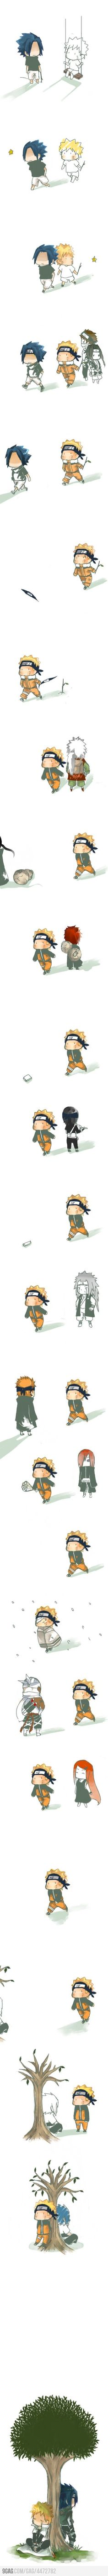 Aww. This depicts Naruto's struggle perfectly. I hate Sasuke for leaving my baby alone. But I love him… Mostly for his chicken-butt hair and flawless skin.